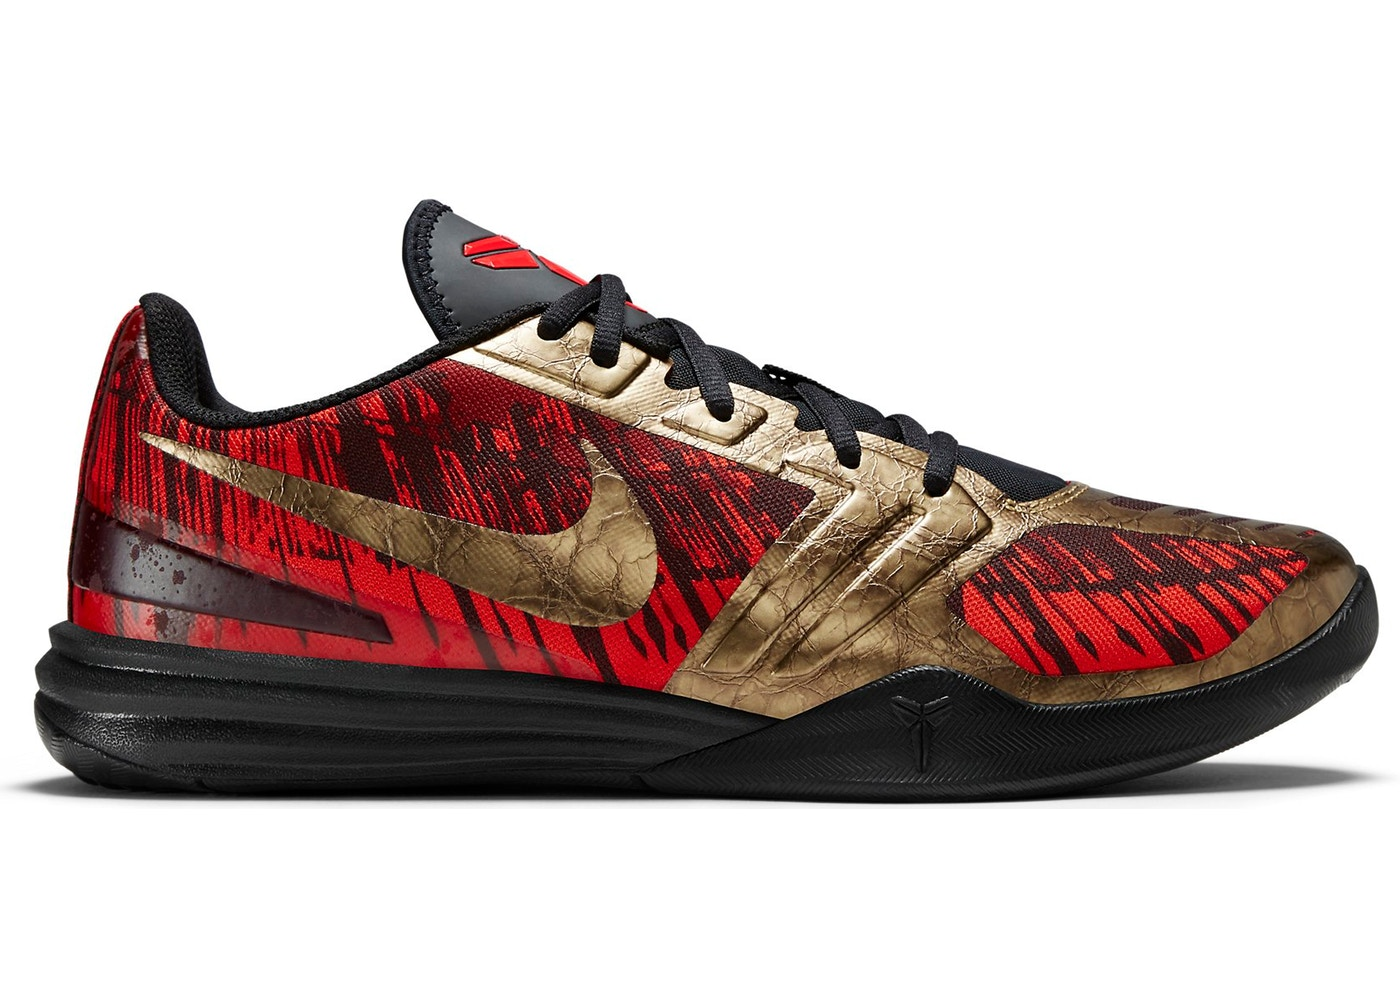 info for 57ca0 3369b Nike KB Mentality Black Metallic Gold Chilling Red - 704942-008